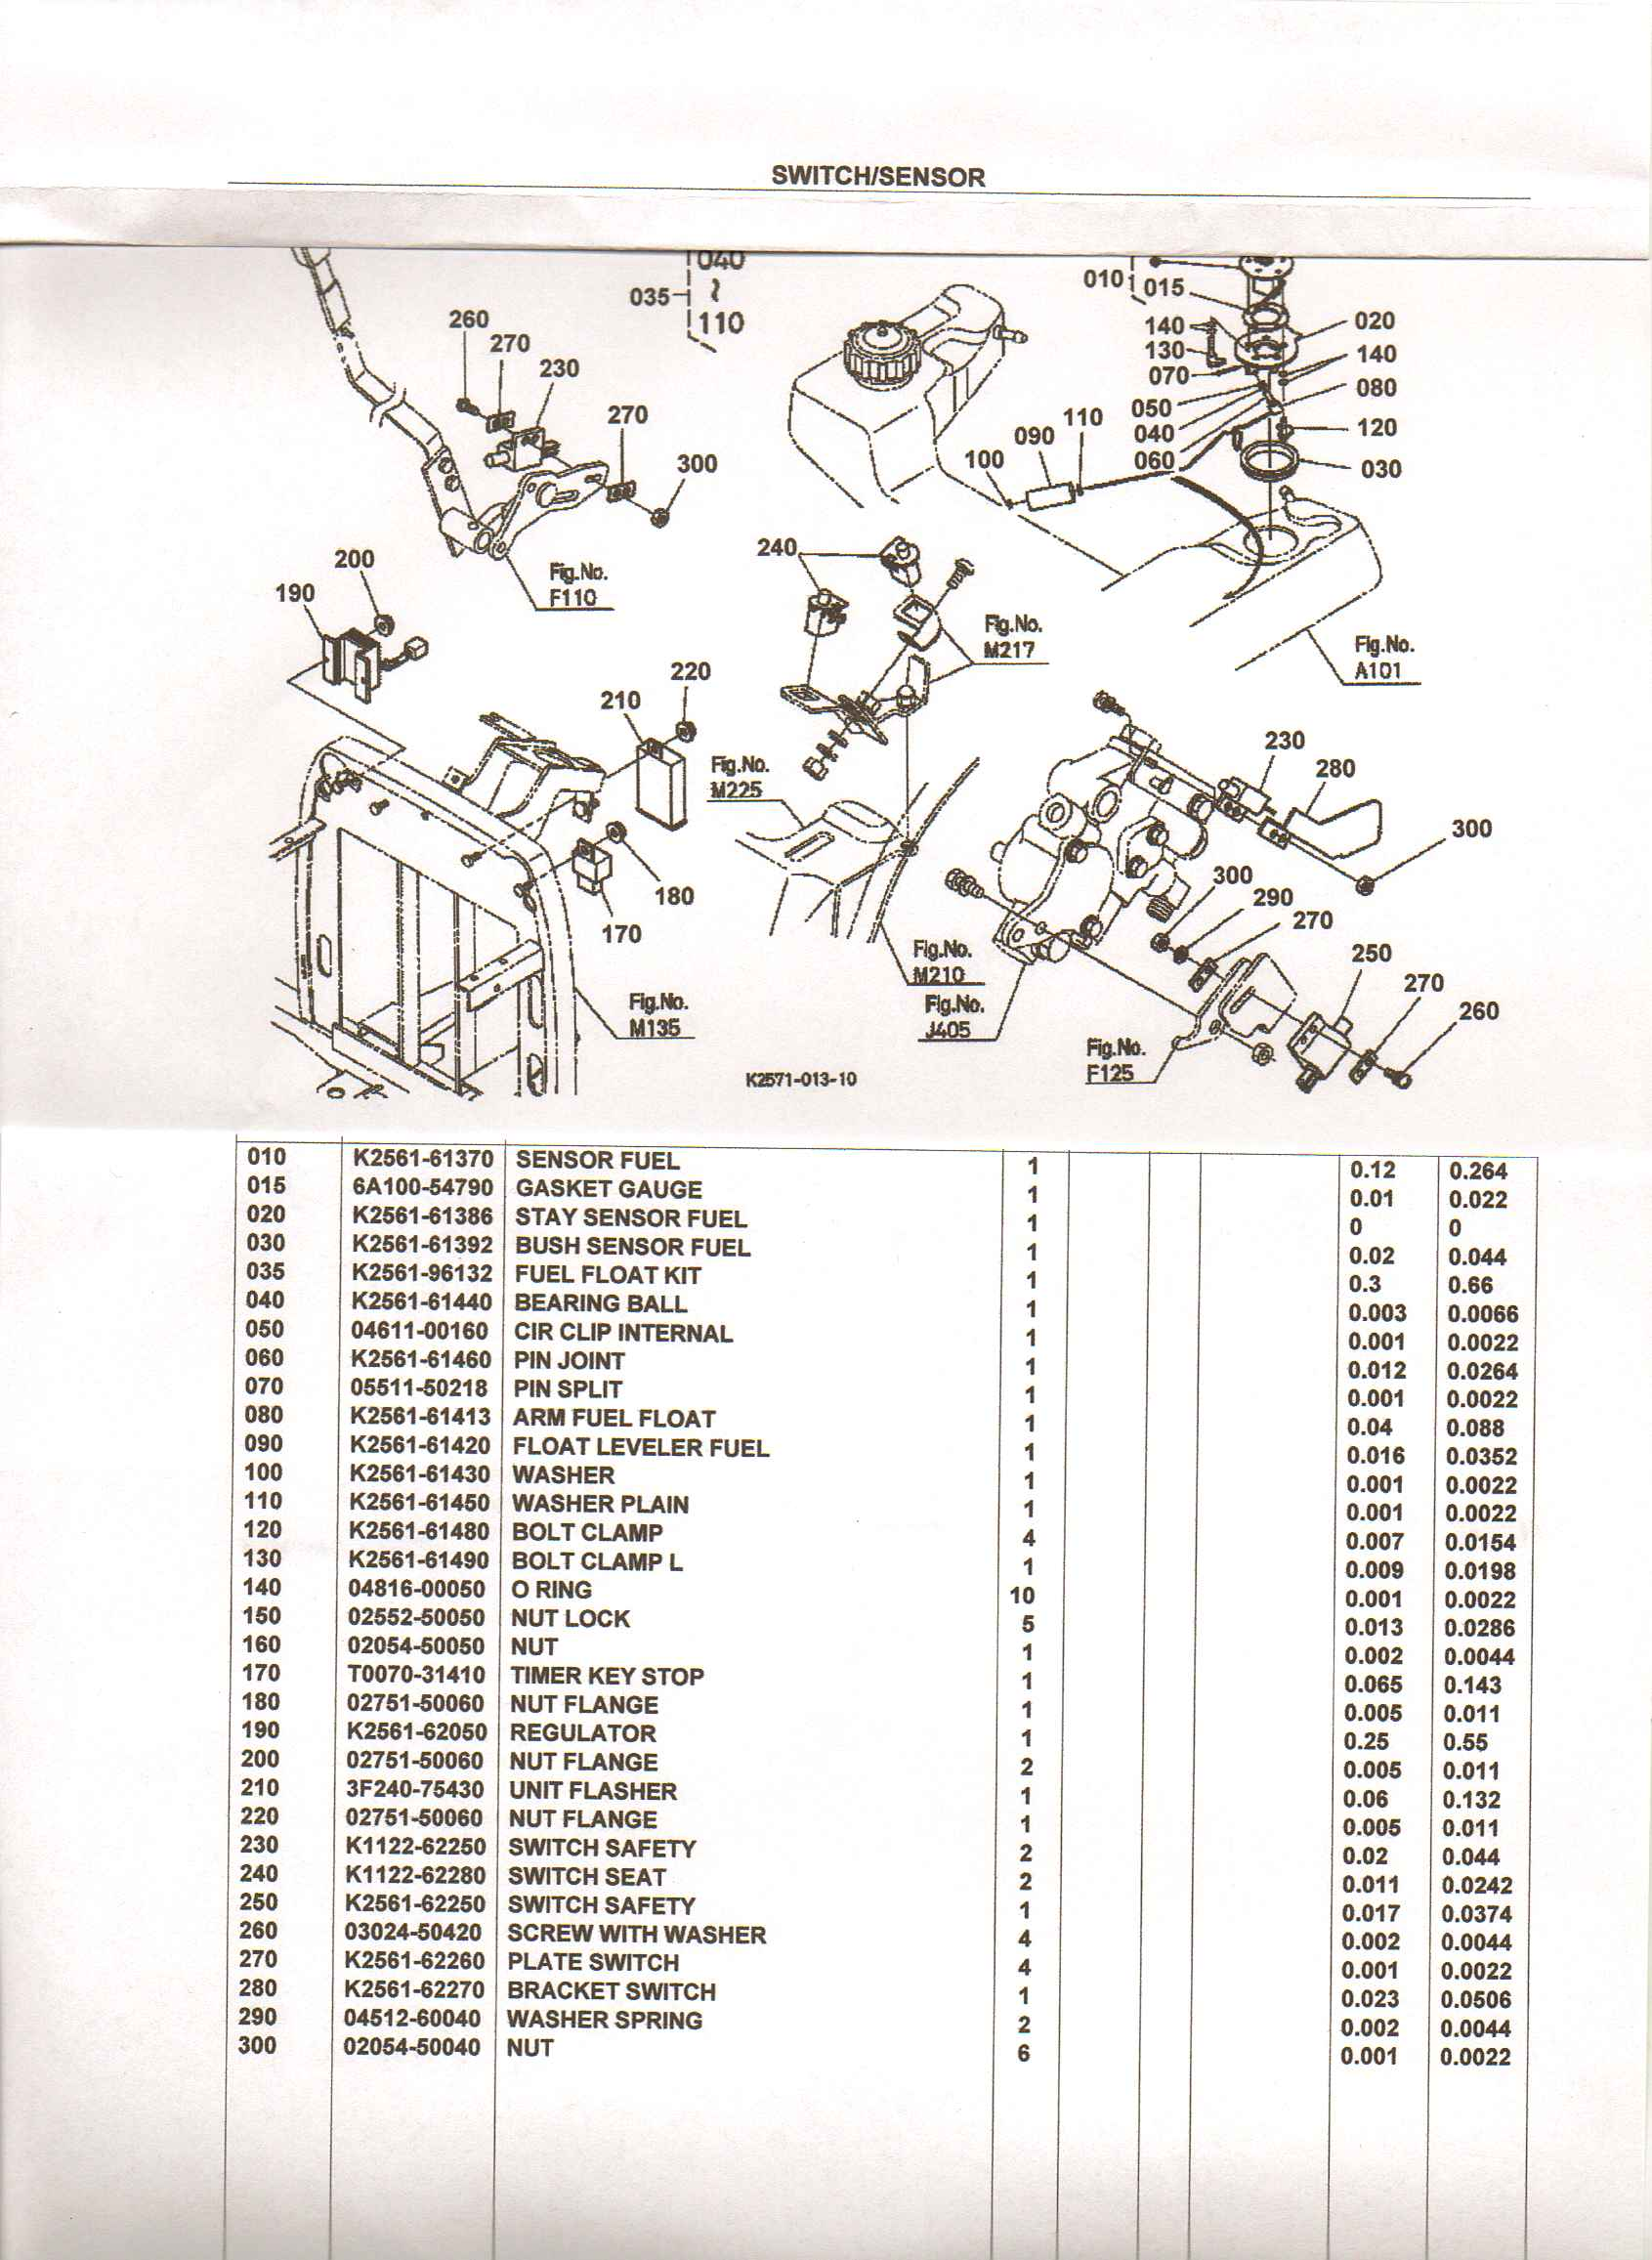 bx 2230 how many safety swithes are their and where are they located – Kubota Electrical Wiring Diagram